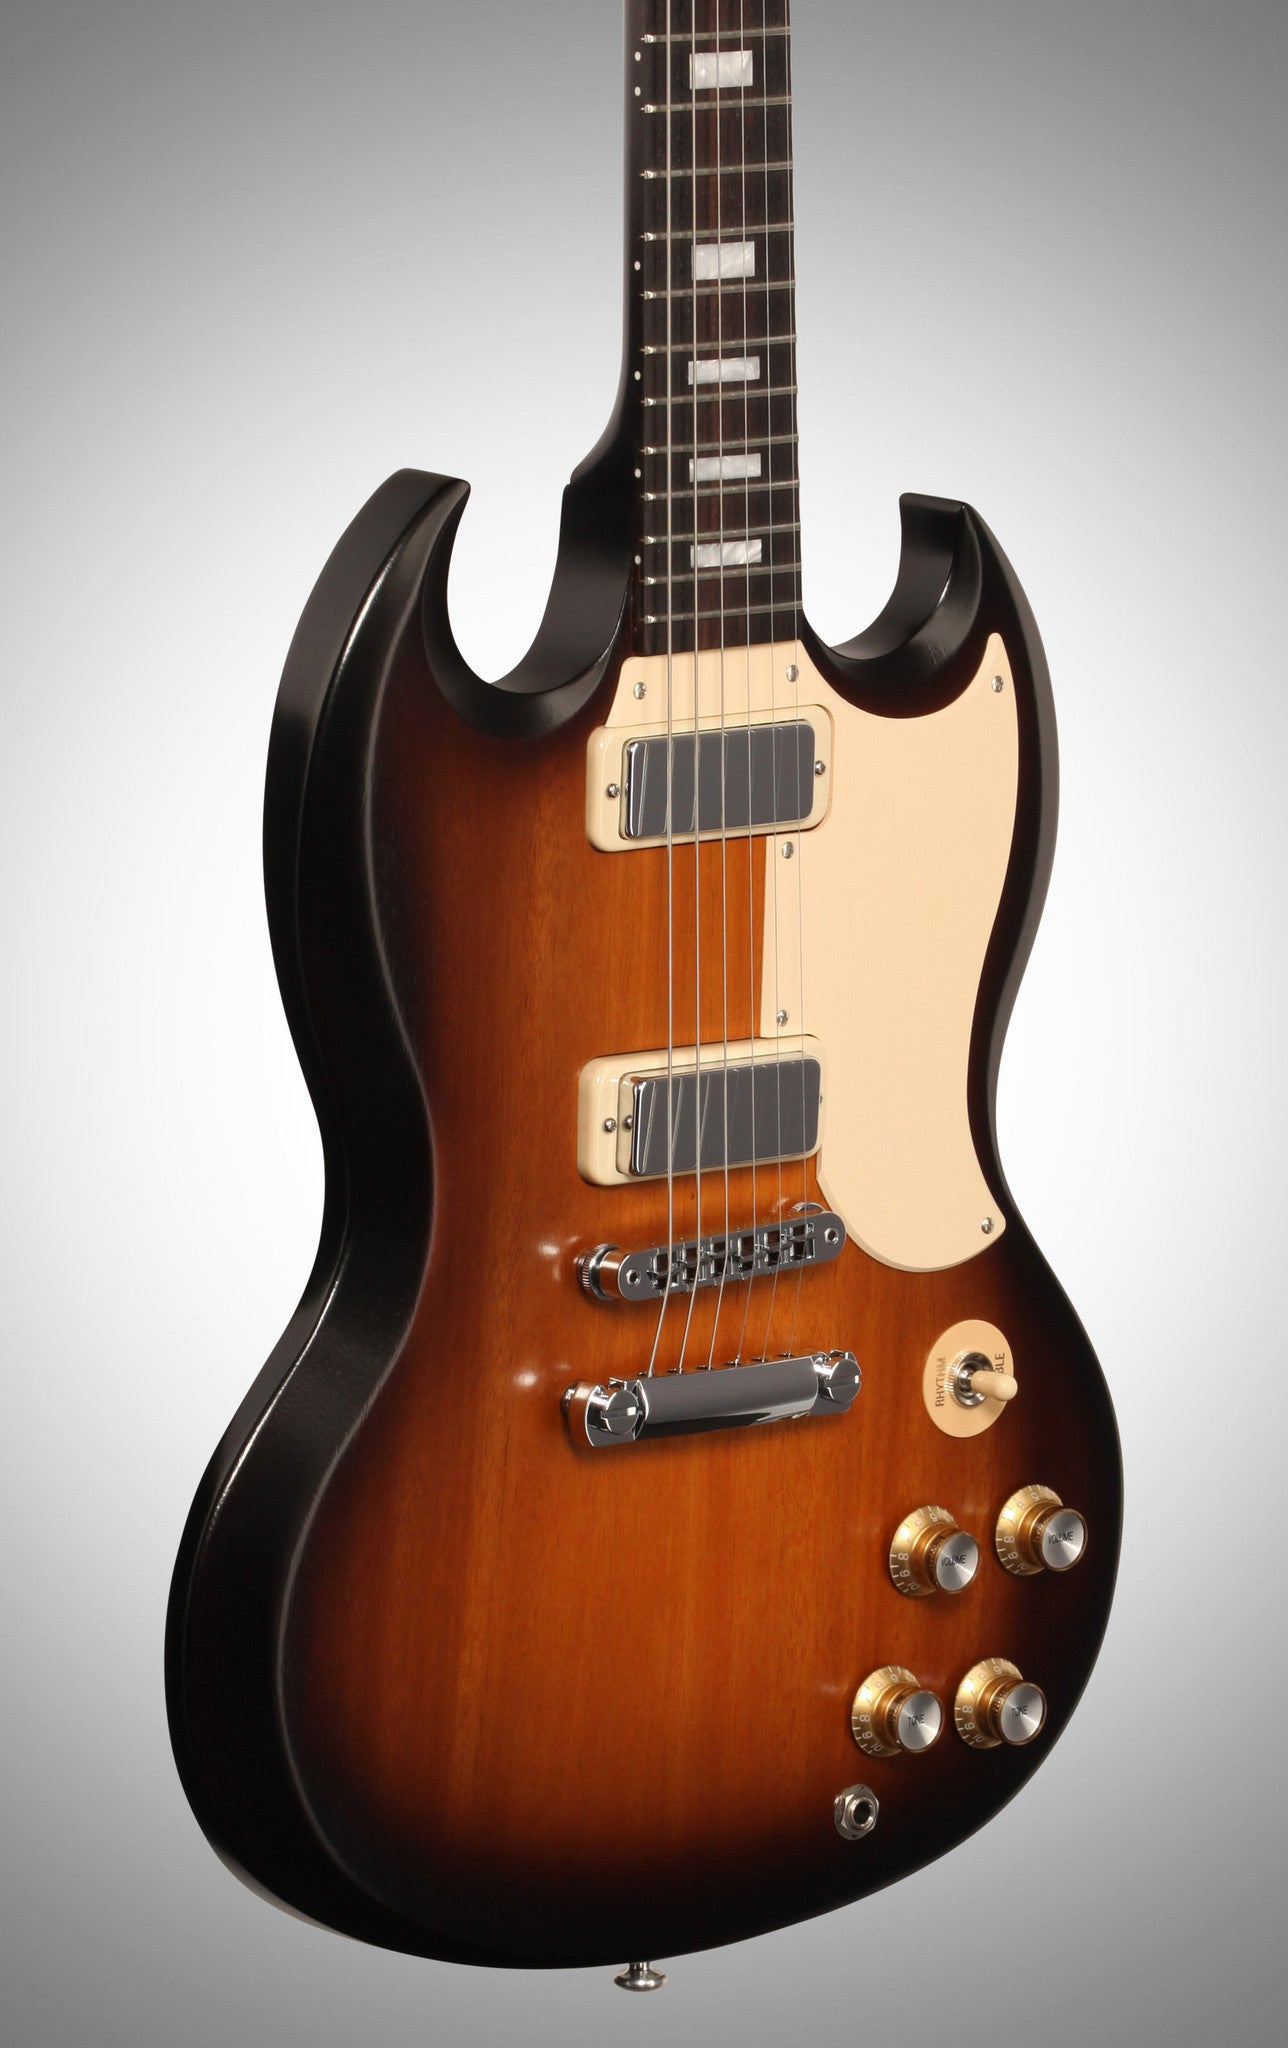 Gibson 2016 SG Special T Electric Guitar (with Gig Bag), Satin Vintage Sunburst - HIENDGUITAR   Gibson gibson2016